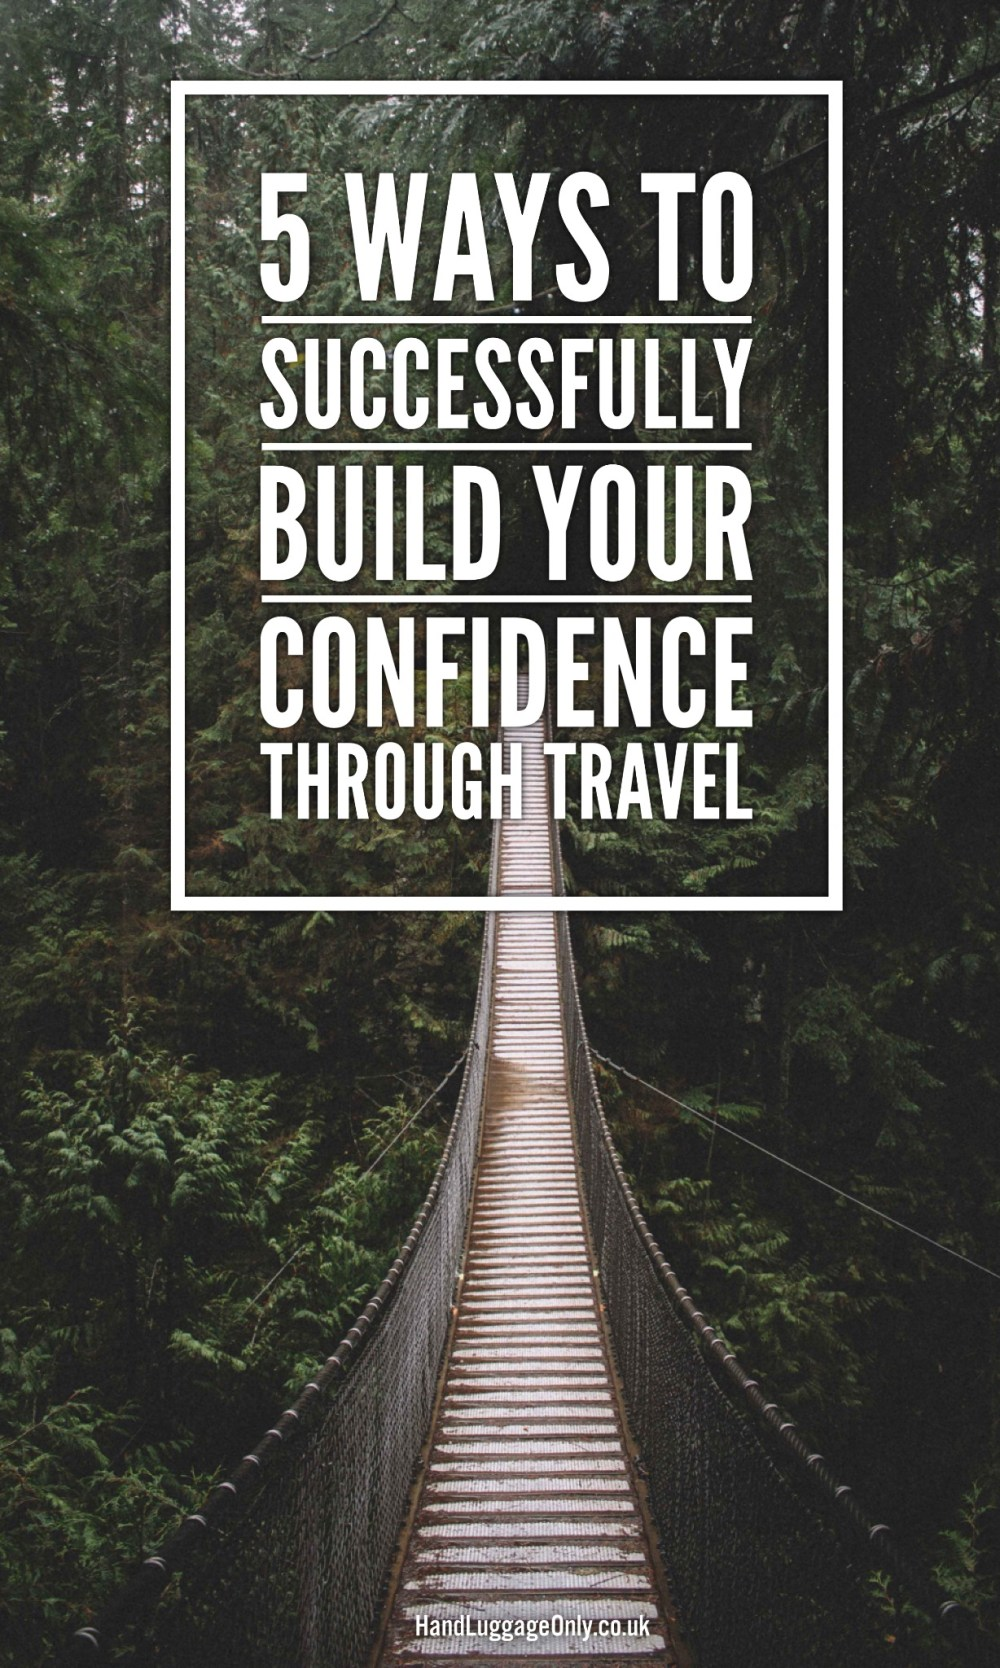 5 Ways To Successfully Build Your Confidence Through Travel